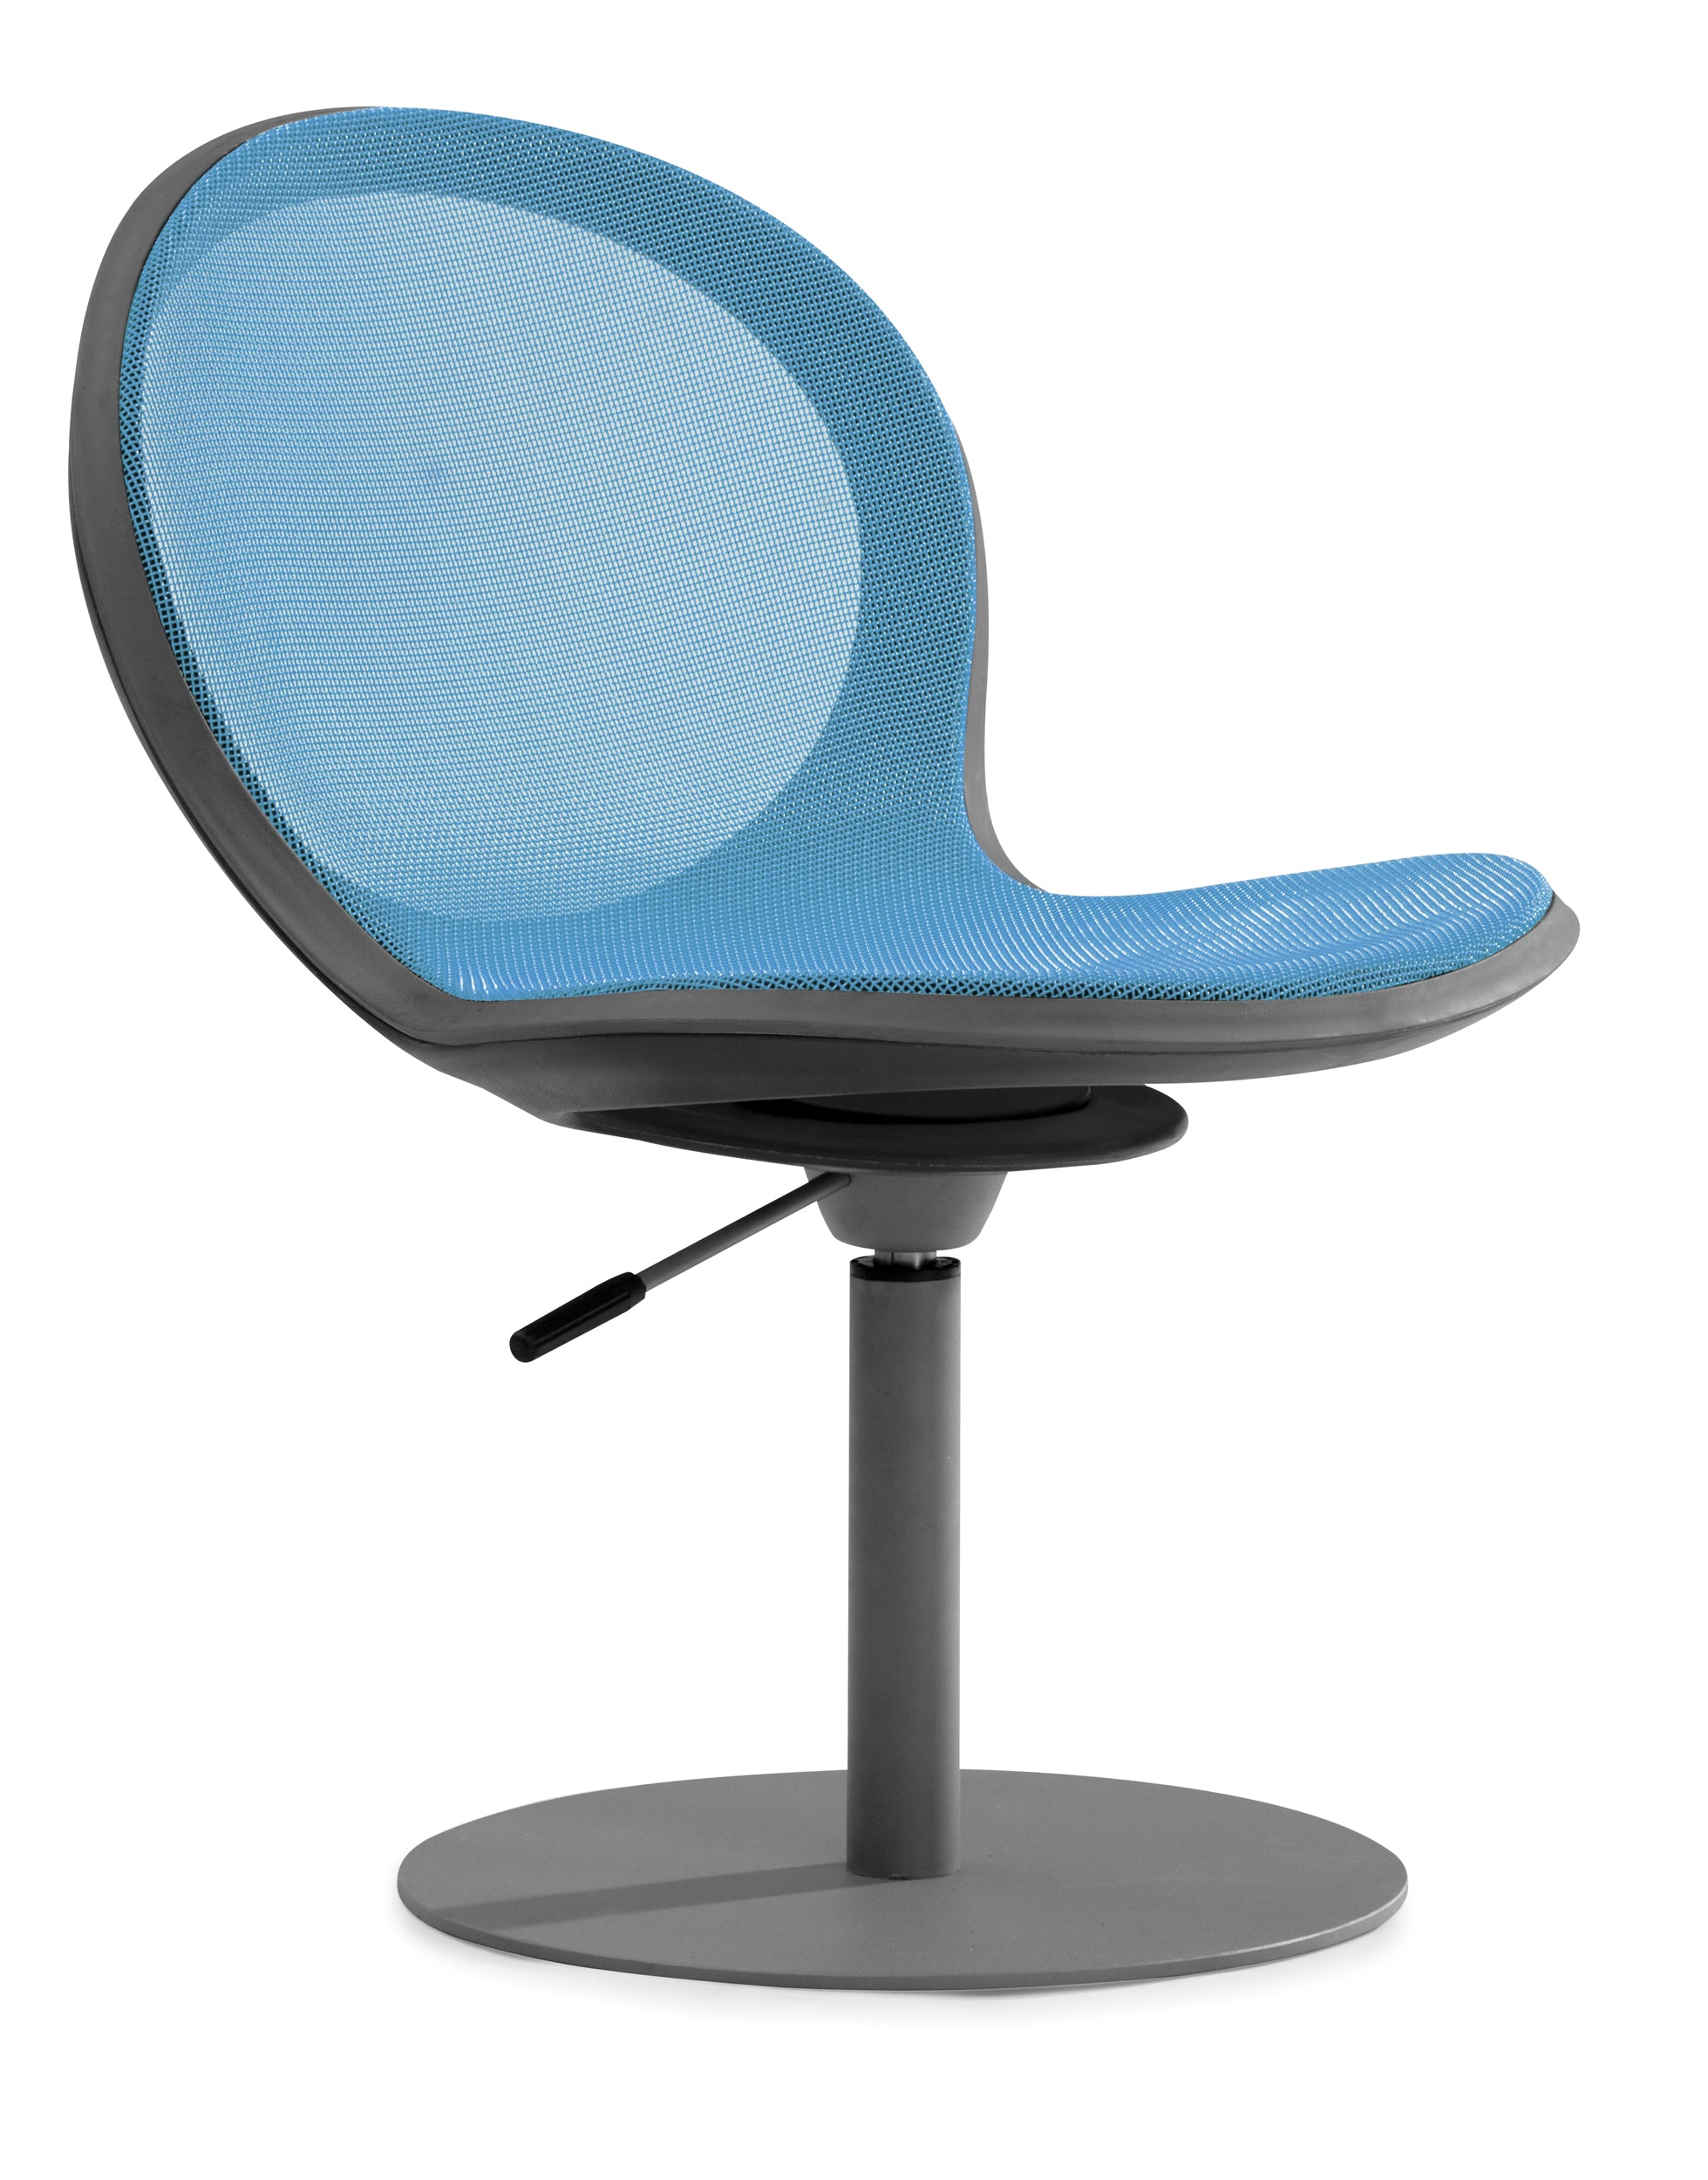 Ofminc Model N102-NET Series Swivel Chair with Gas Lift